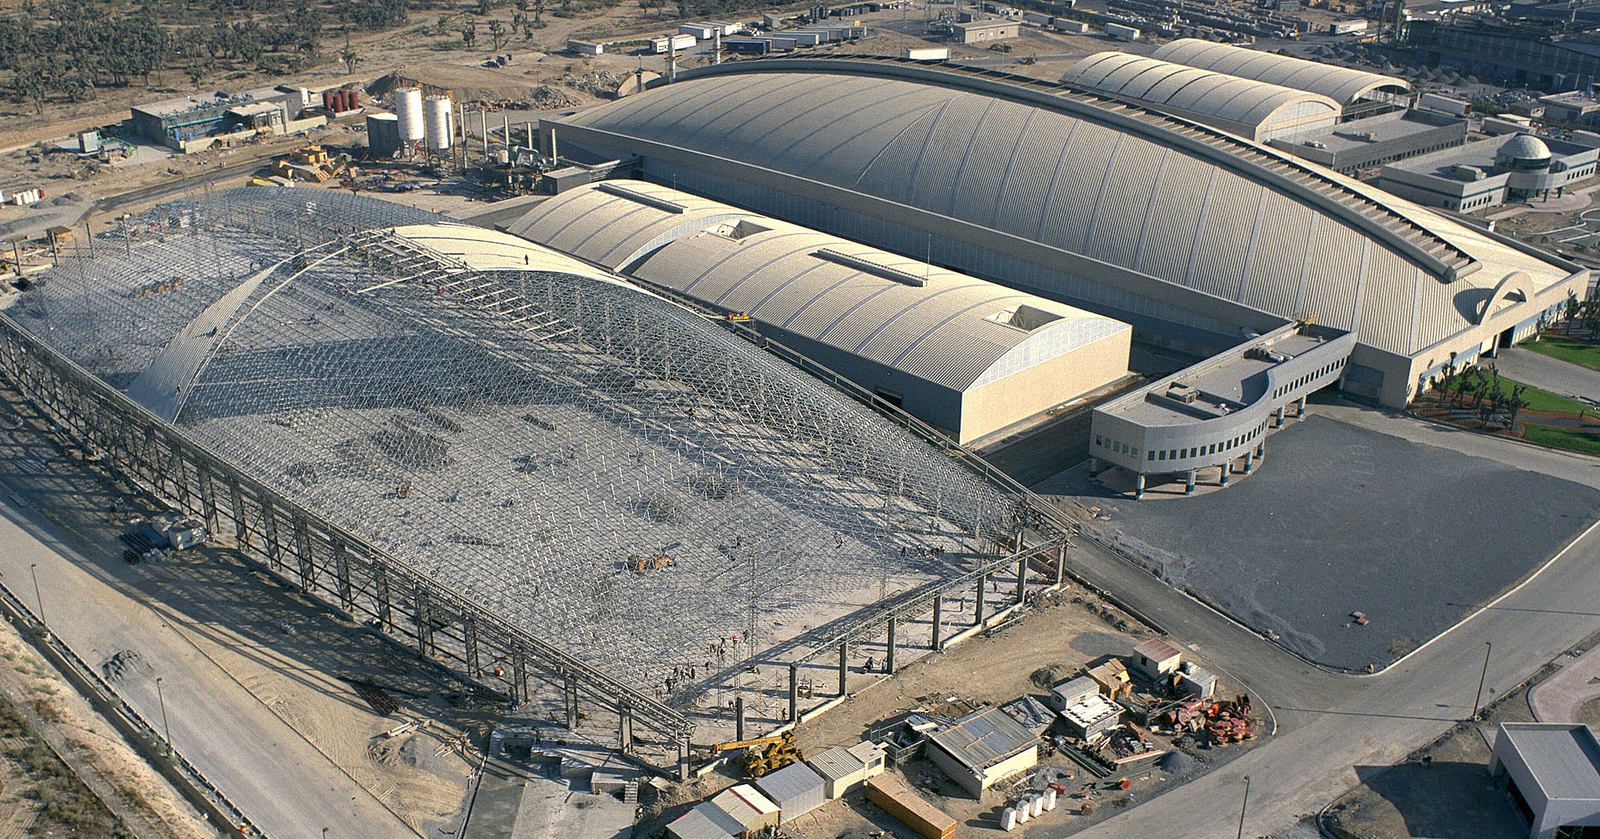 Each Nemak Freedome® covers nearly 18,000 m2 without internal columns